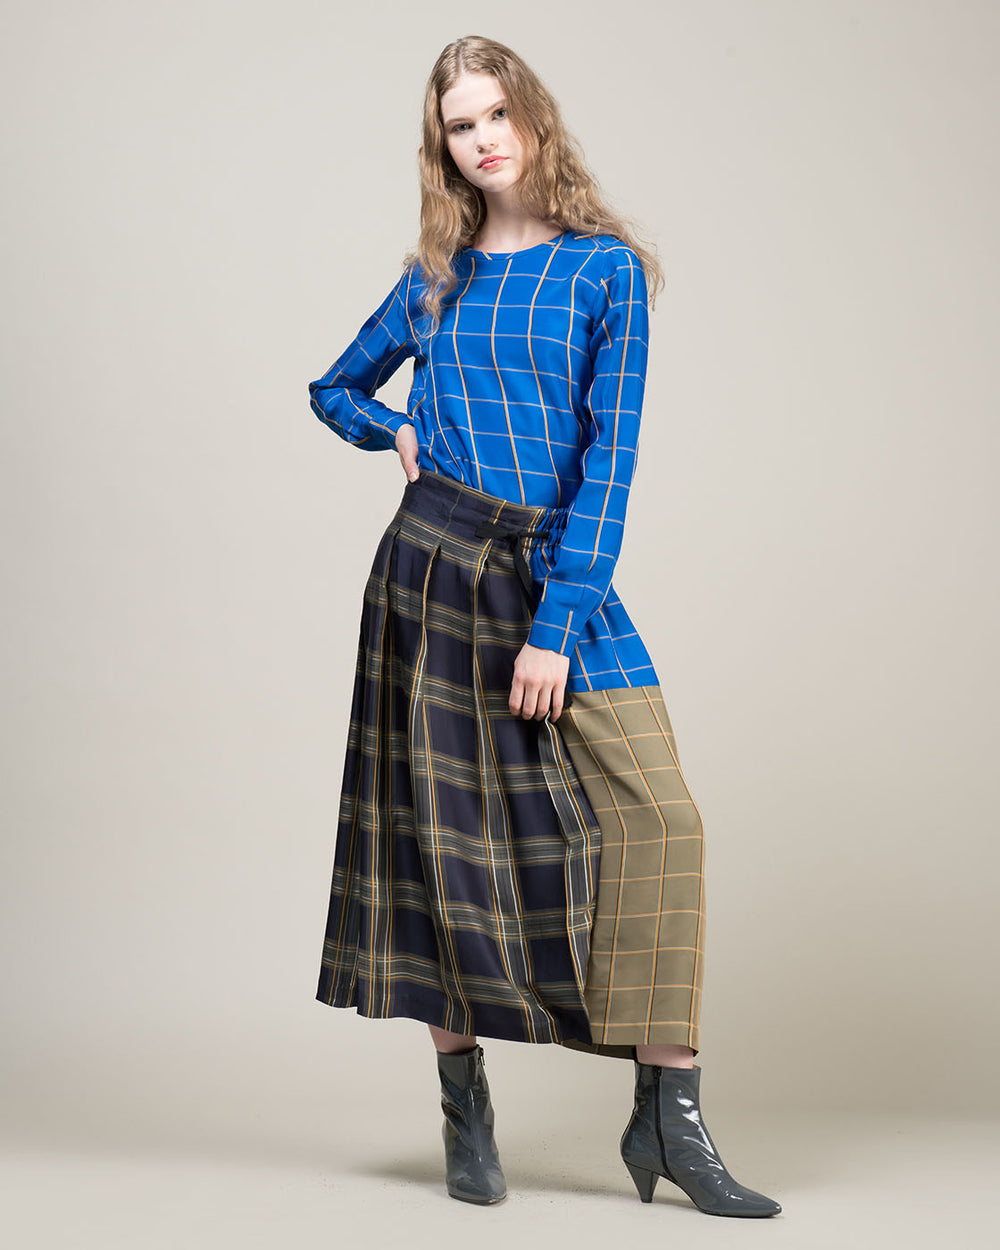 Long Flat Pleat Skirt in Cornflower Blue Multicheck Pattern